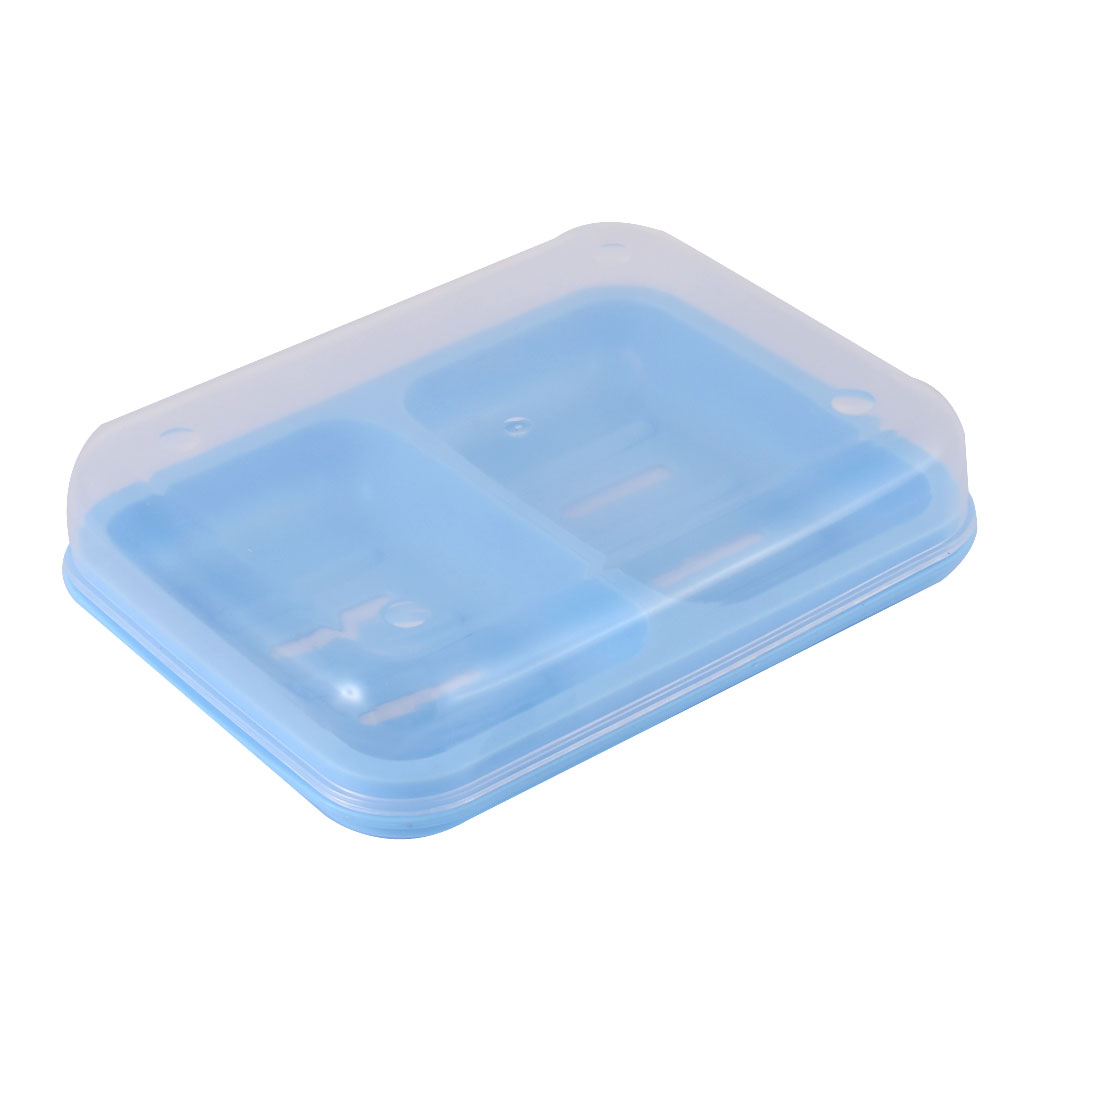 Plastic Rectangle Hollow Out Bottom Two Section Soap Case Box Holder Blue